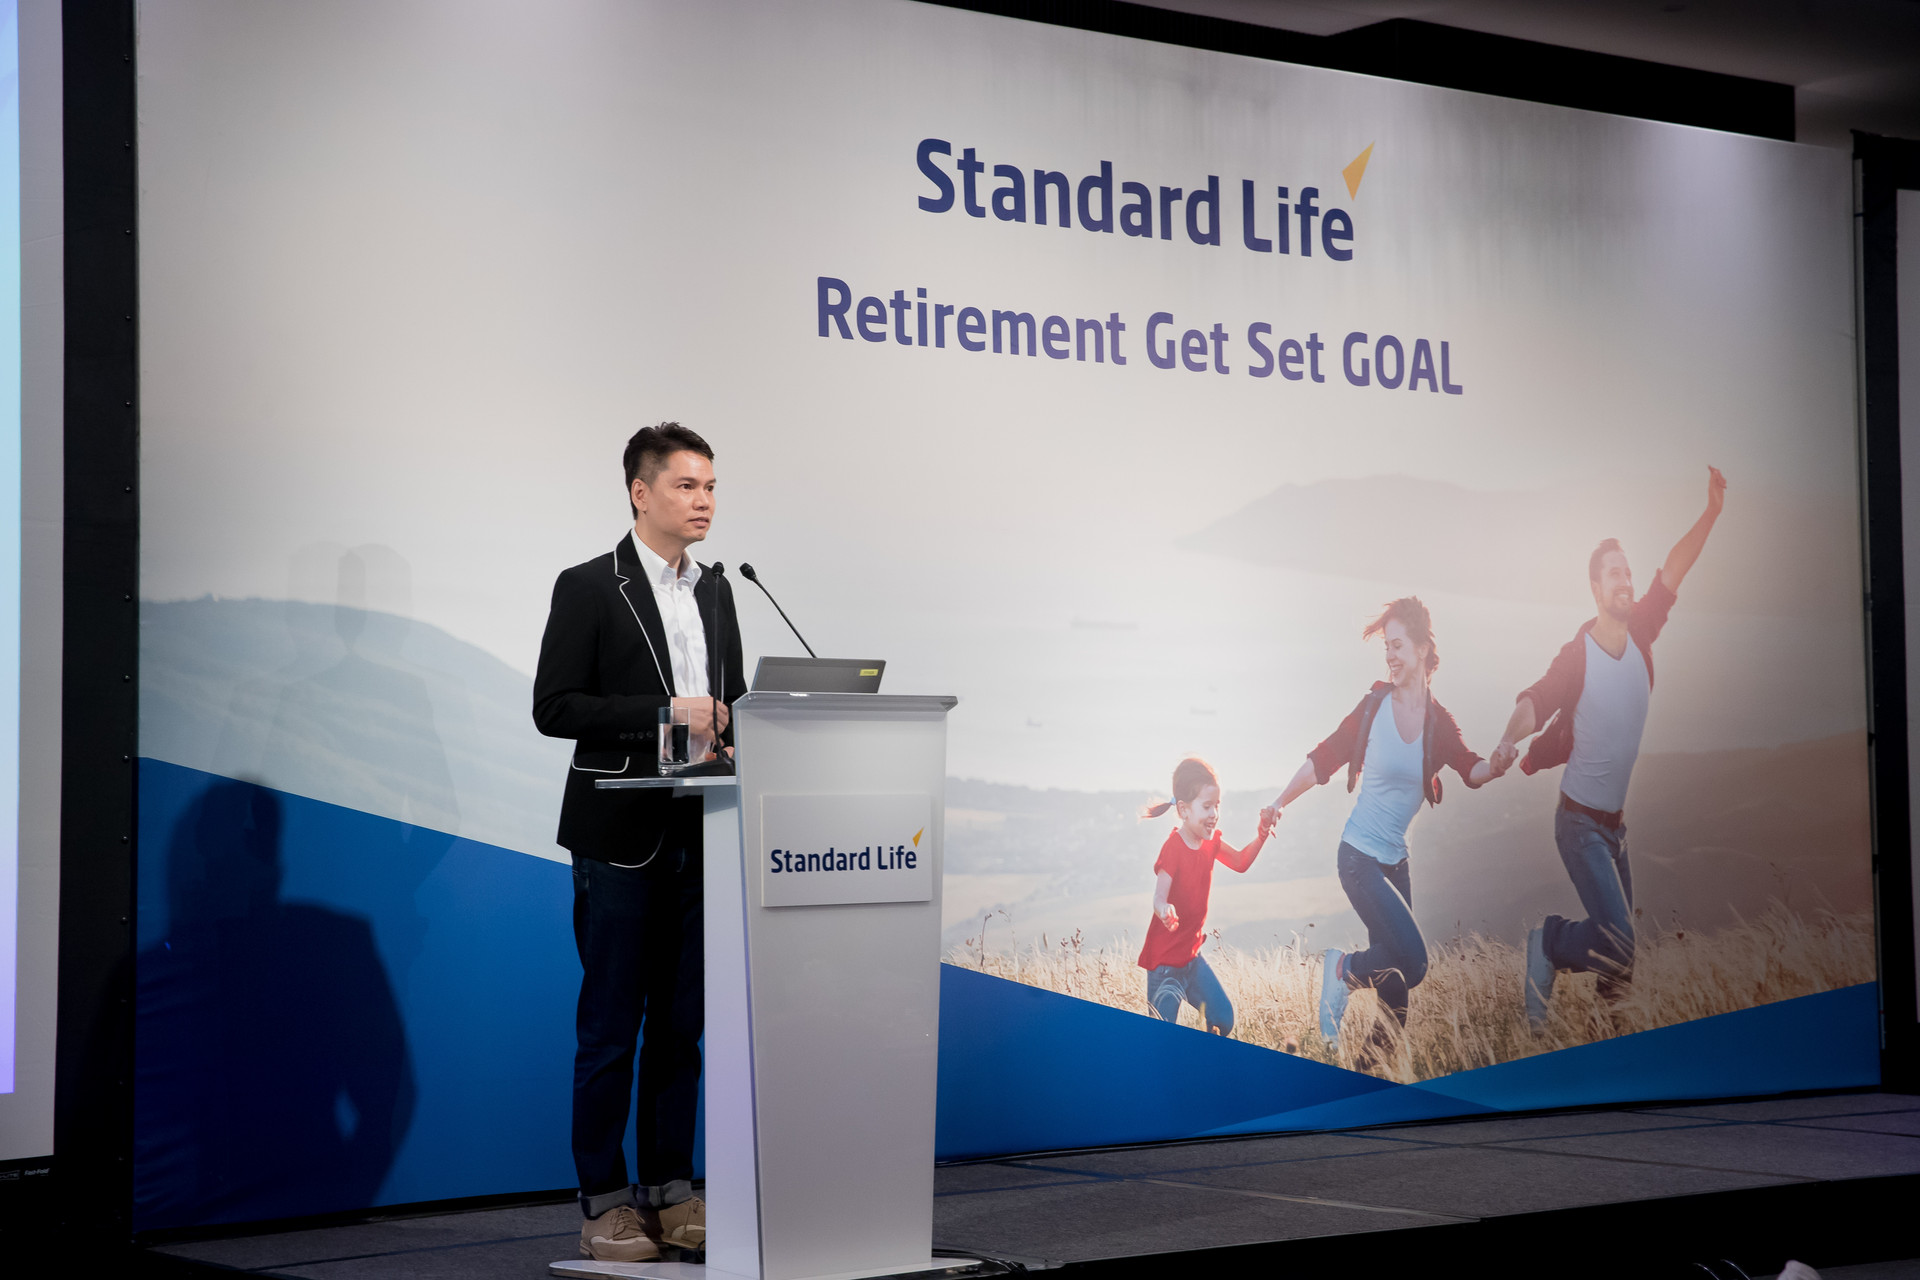 Standard Life Retirement Get Set Goal stage with asian men in suit with podium